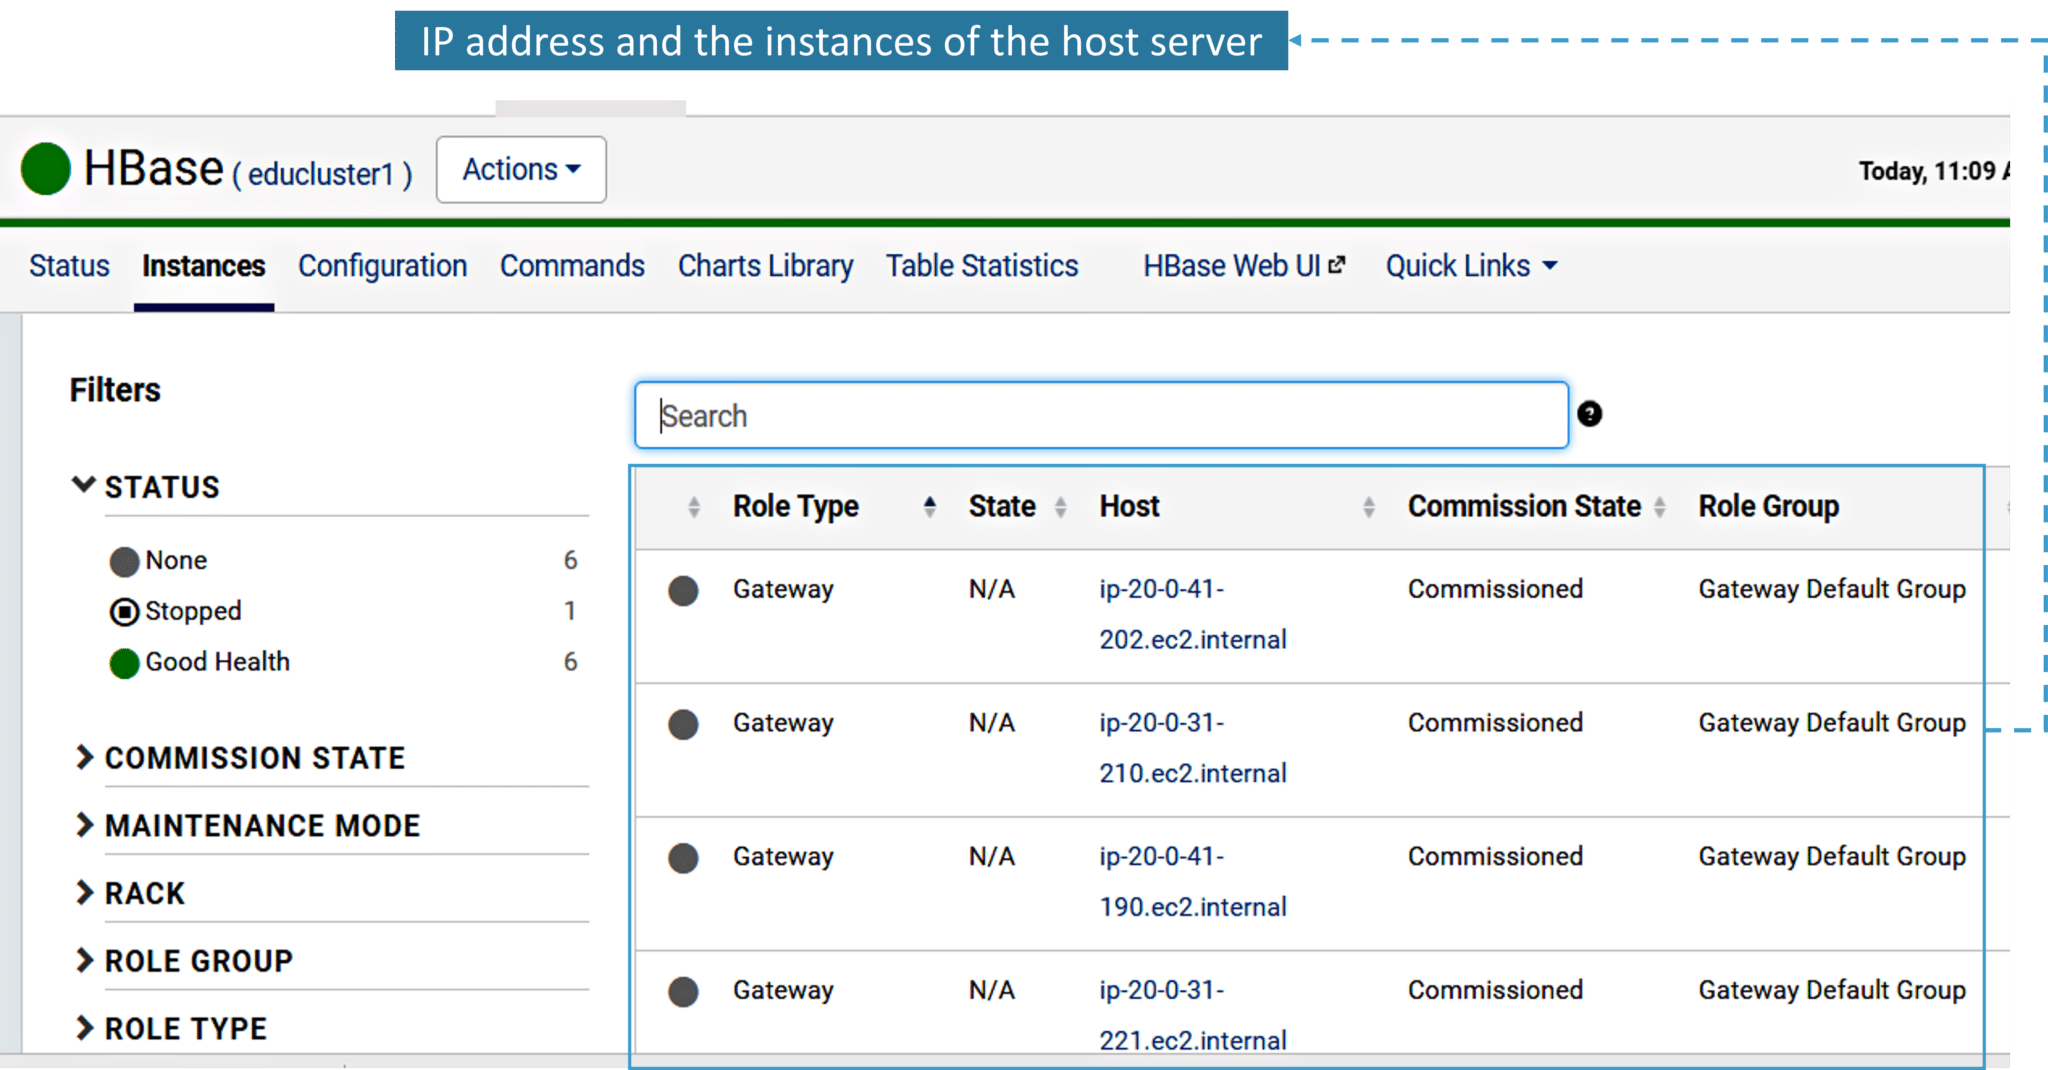 Fig: Status and IP address of the Host Server of the HBase cluster